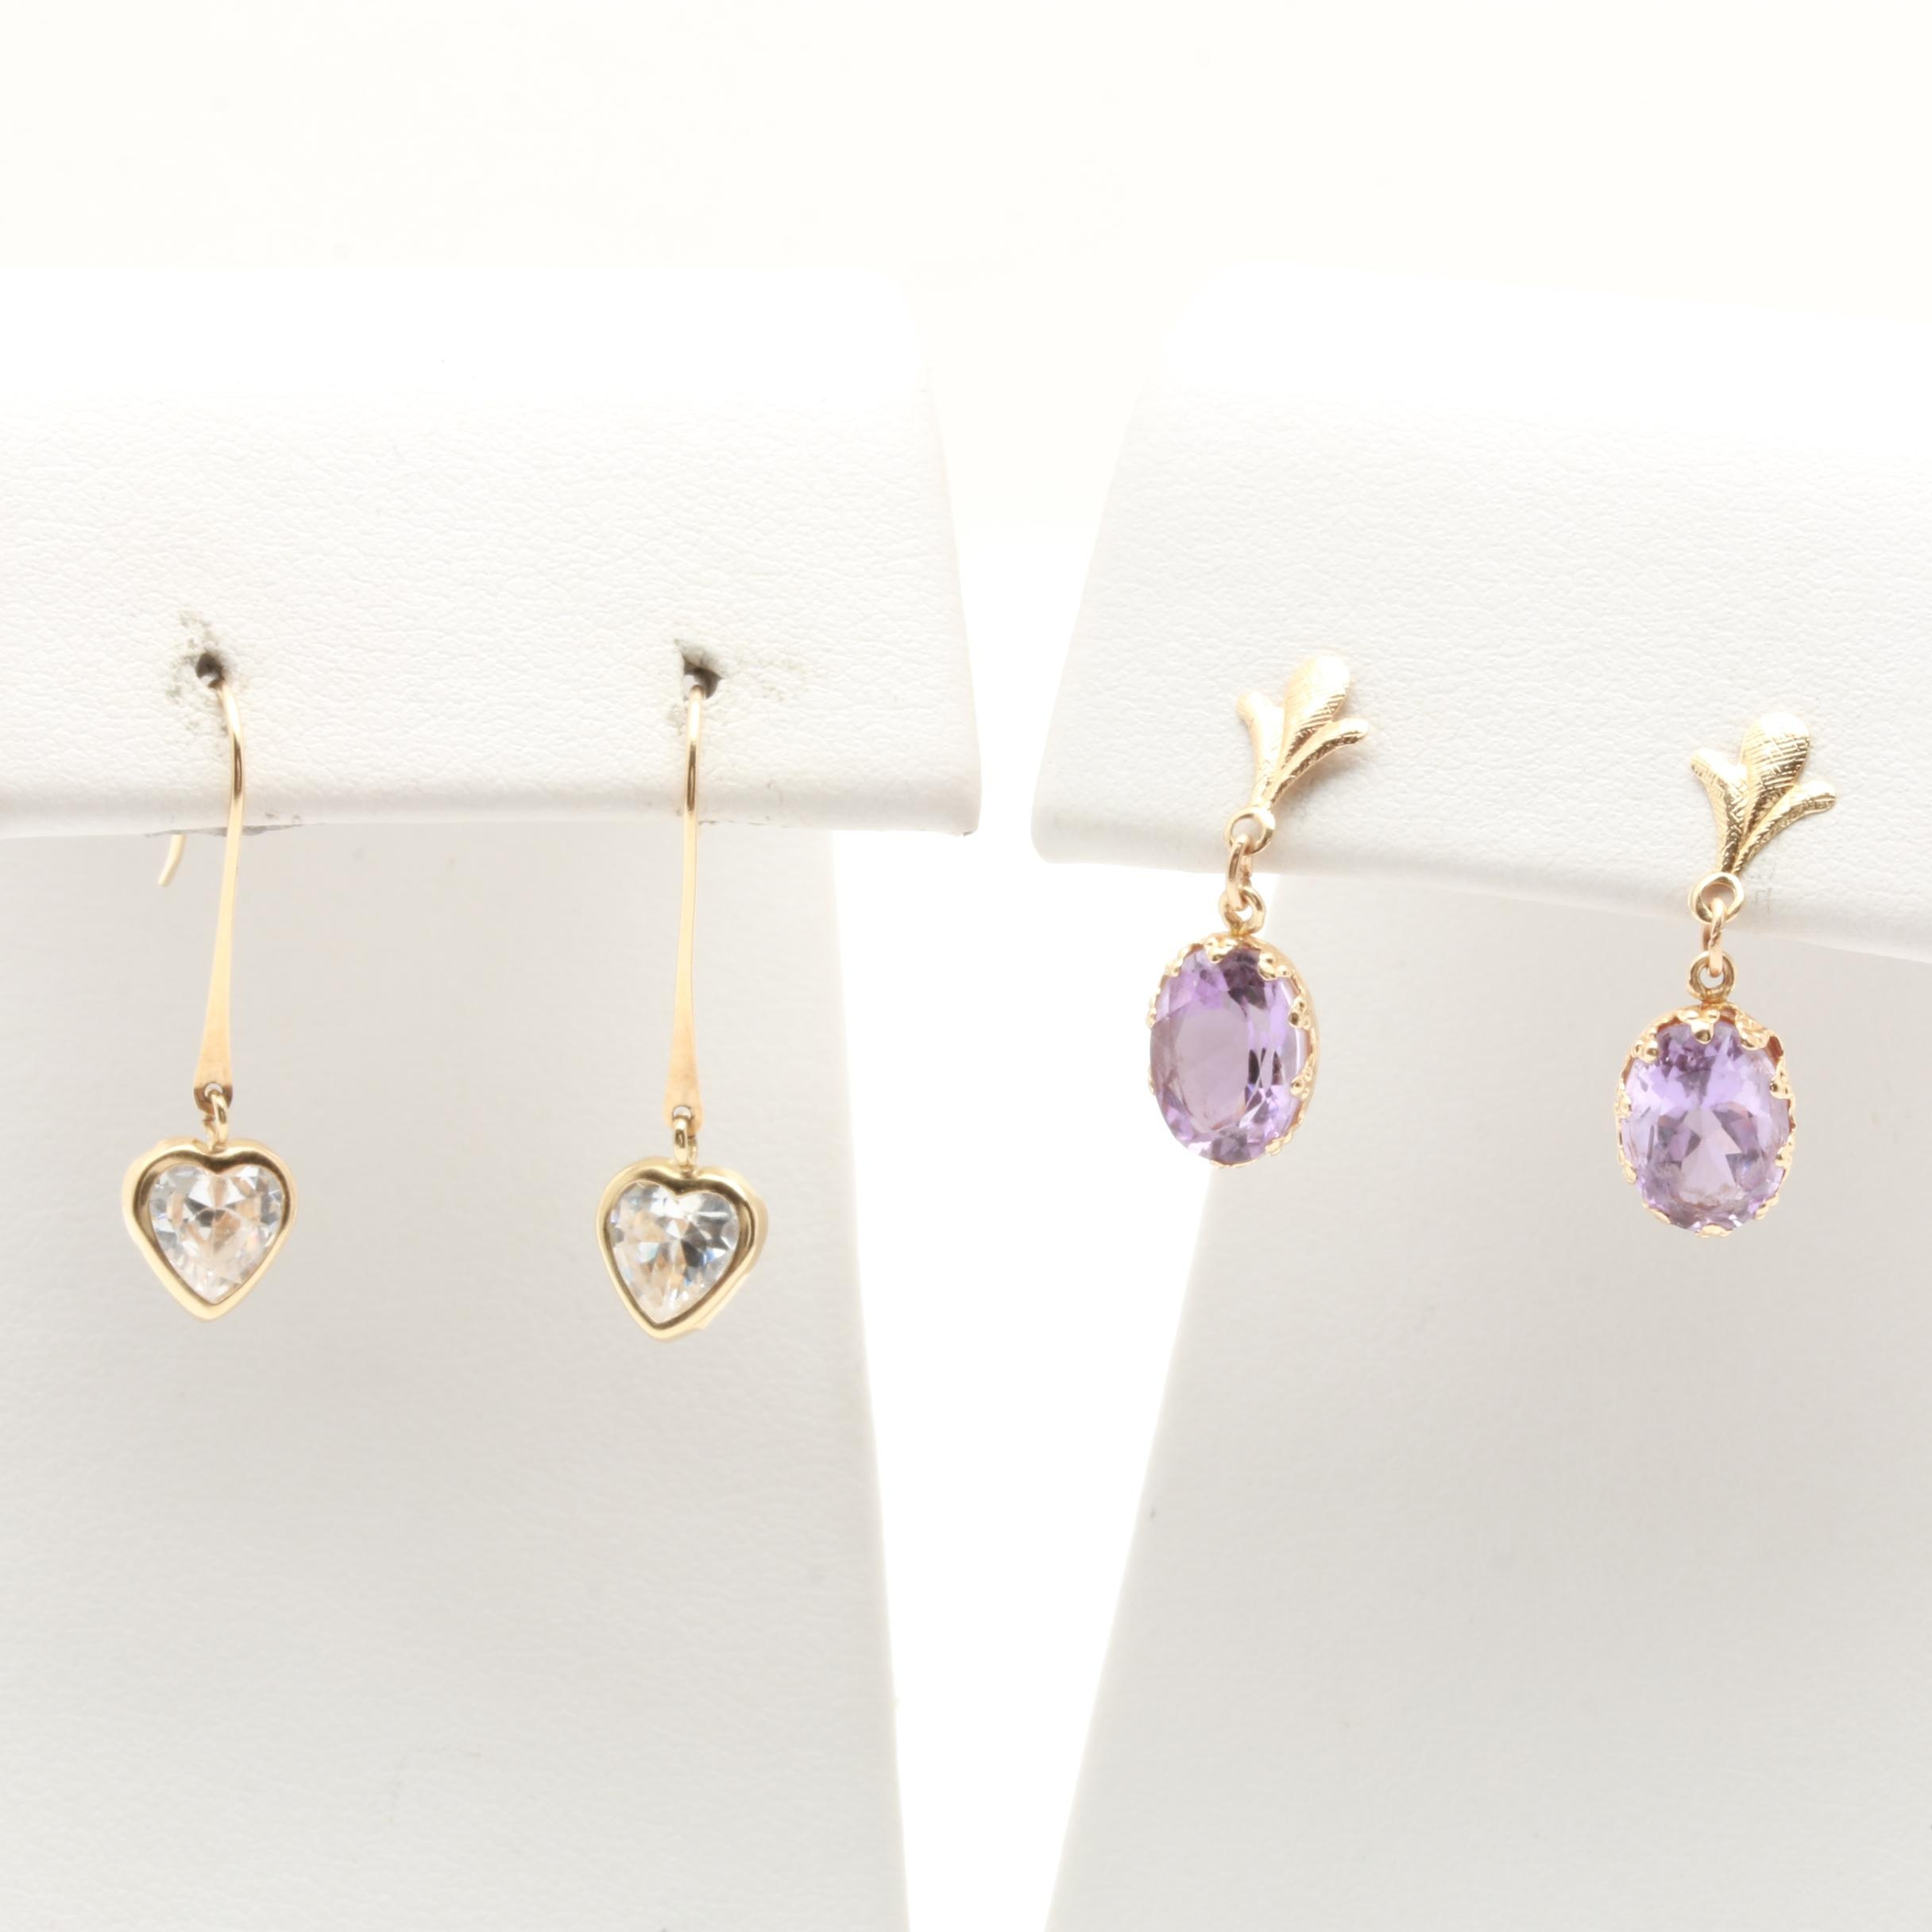 14K Yellow Gold Cubic Zirconia and Amethyst Earrings